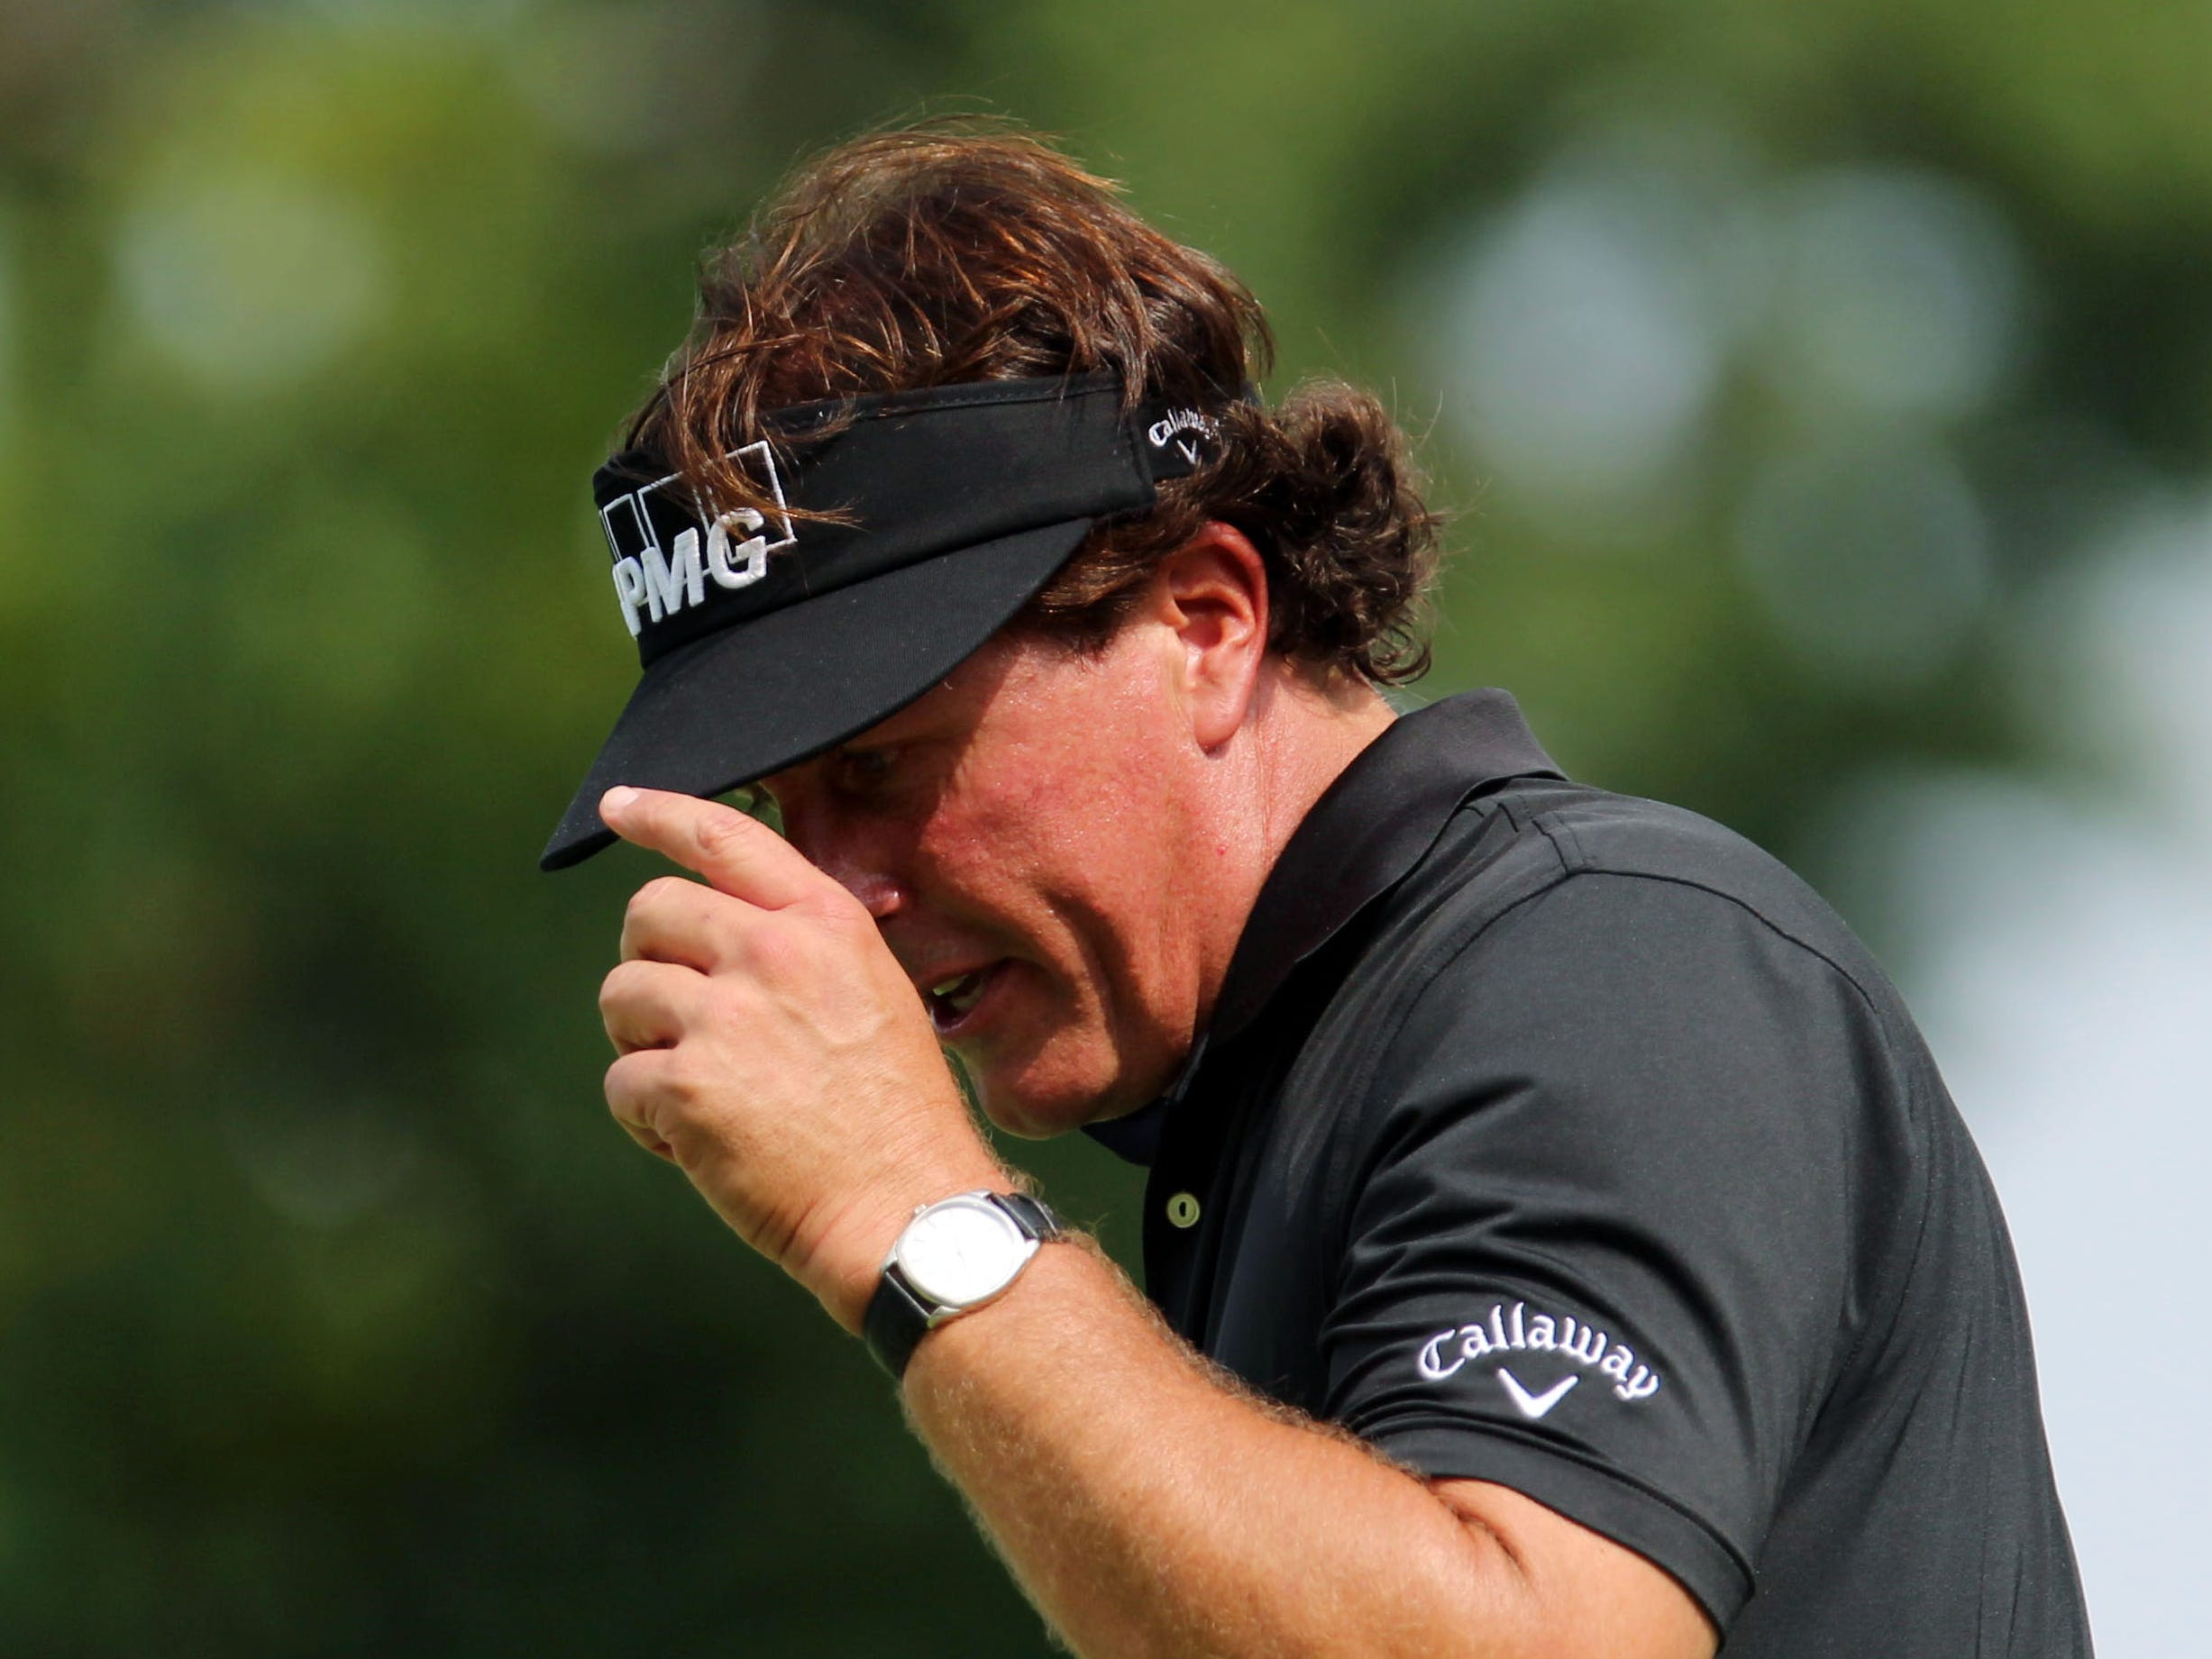 Phil Mickelson tips his hat to the gallery on the 8th green during the first round of the 95th PGA Championship at Oak Hill Country Club.